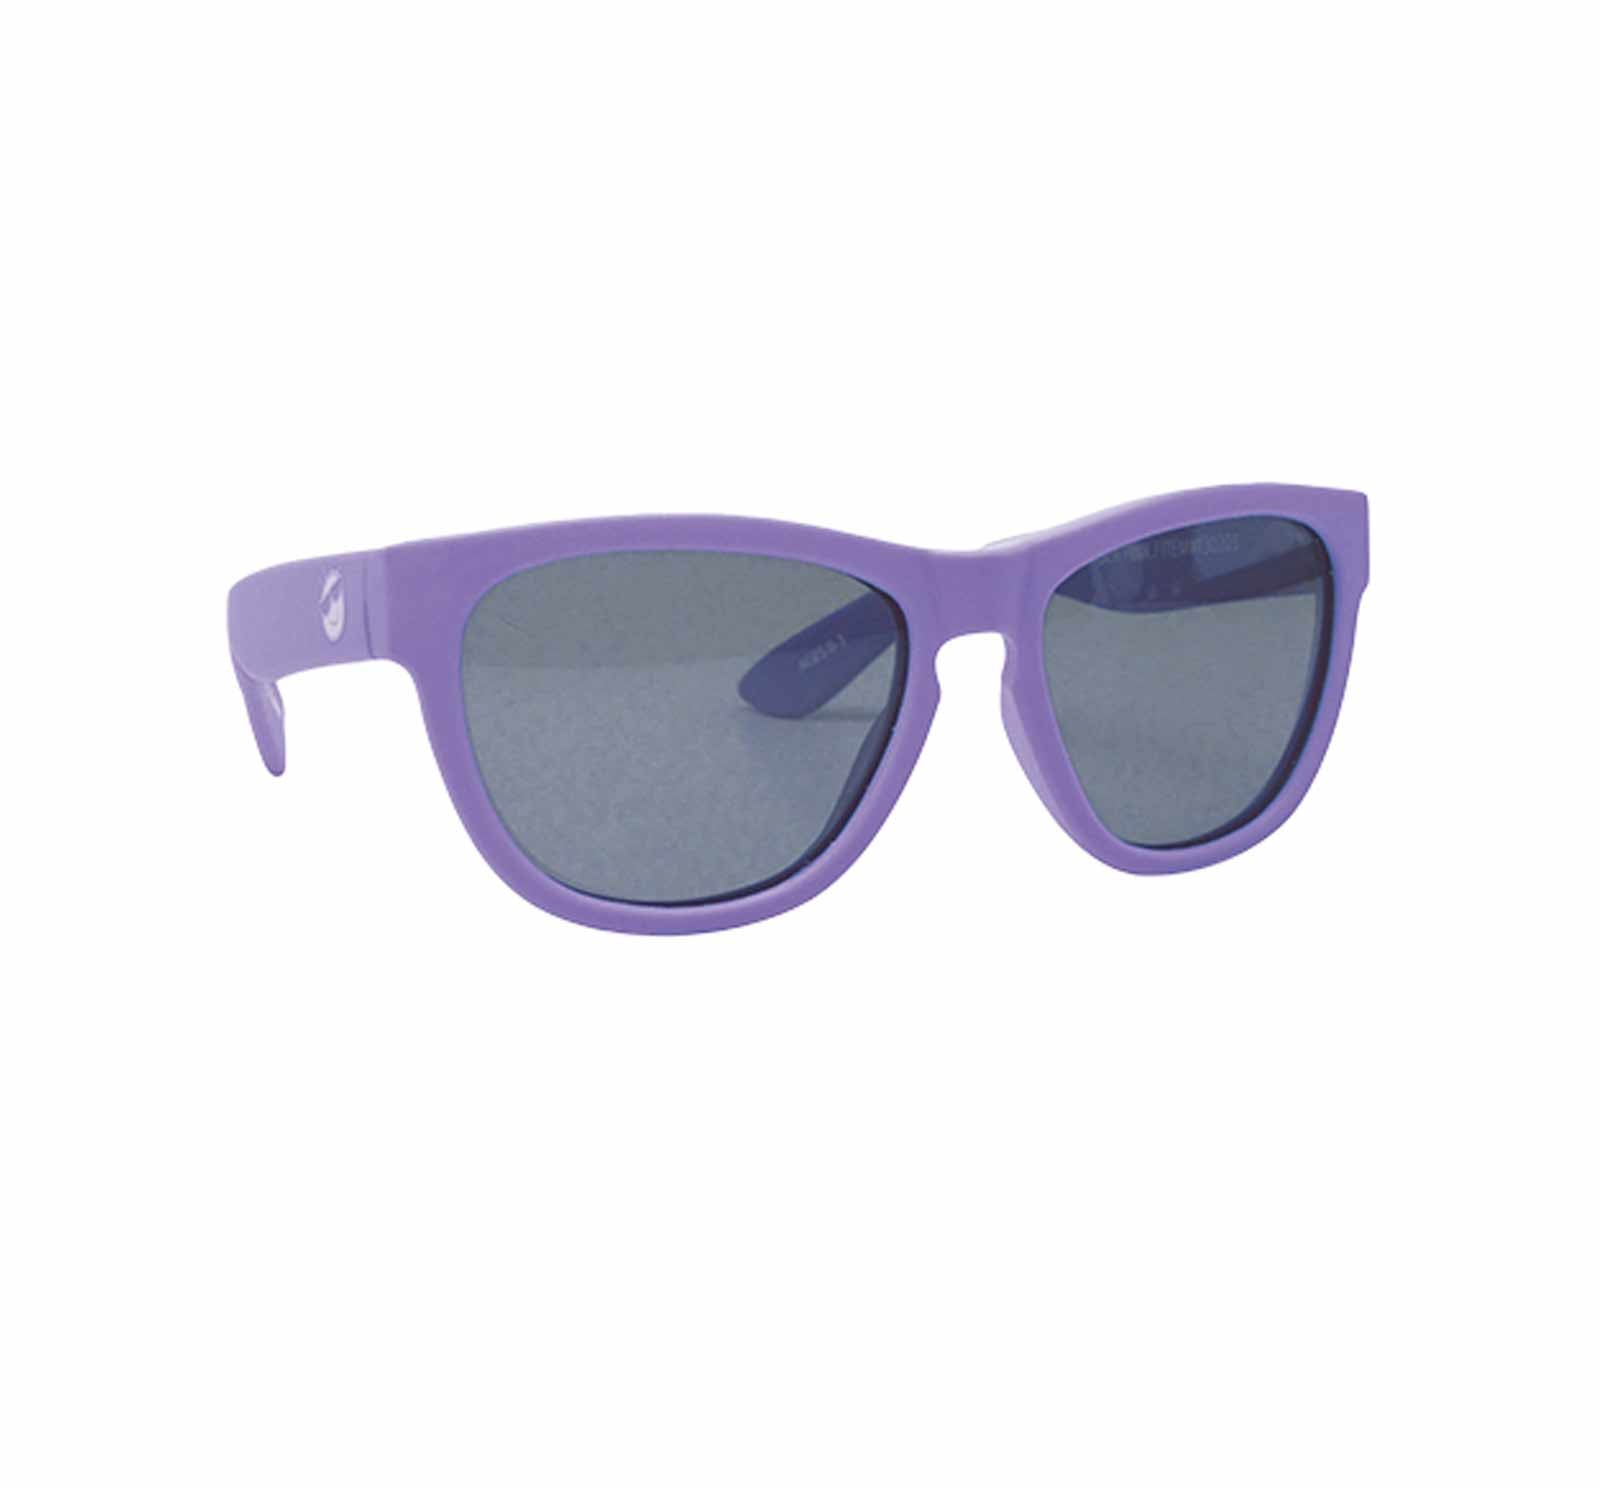 Mini Shades Classic Kid's Polarized Sunglasses (Ages 3-7) - Grape Jelly